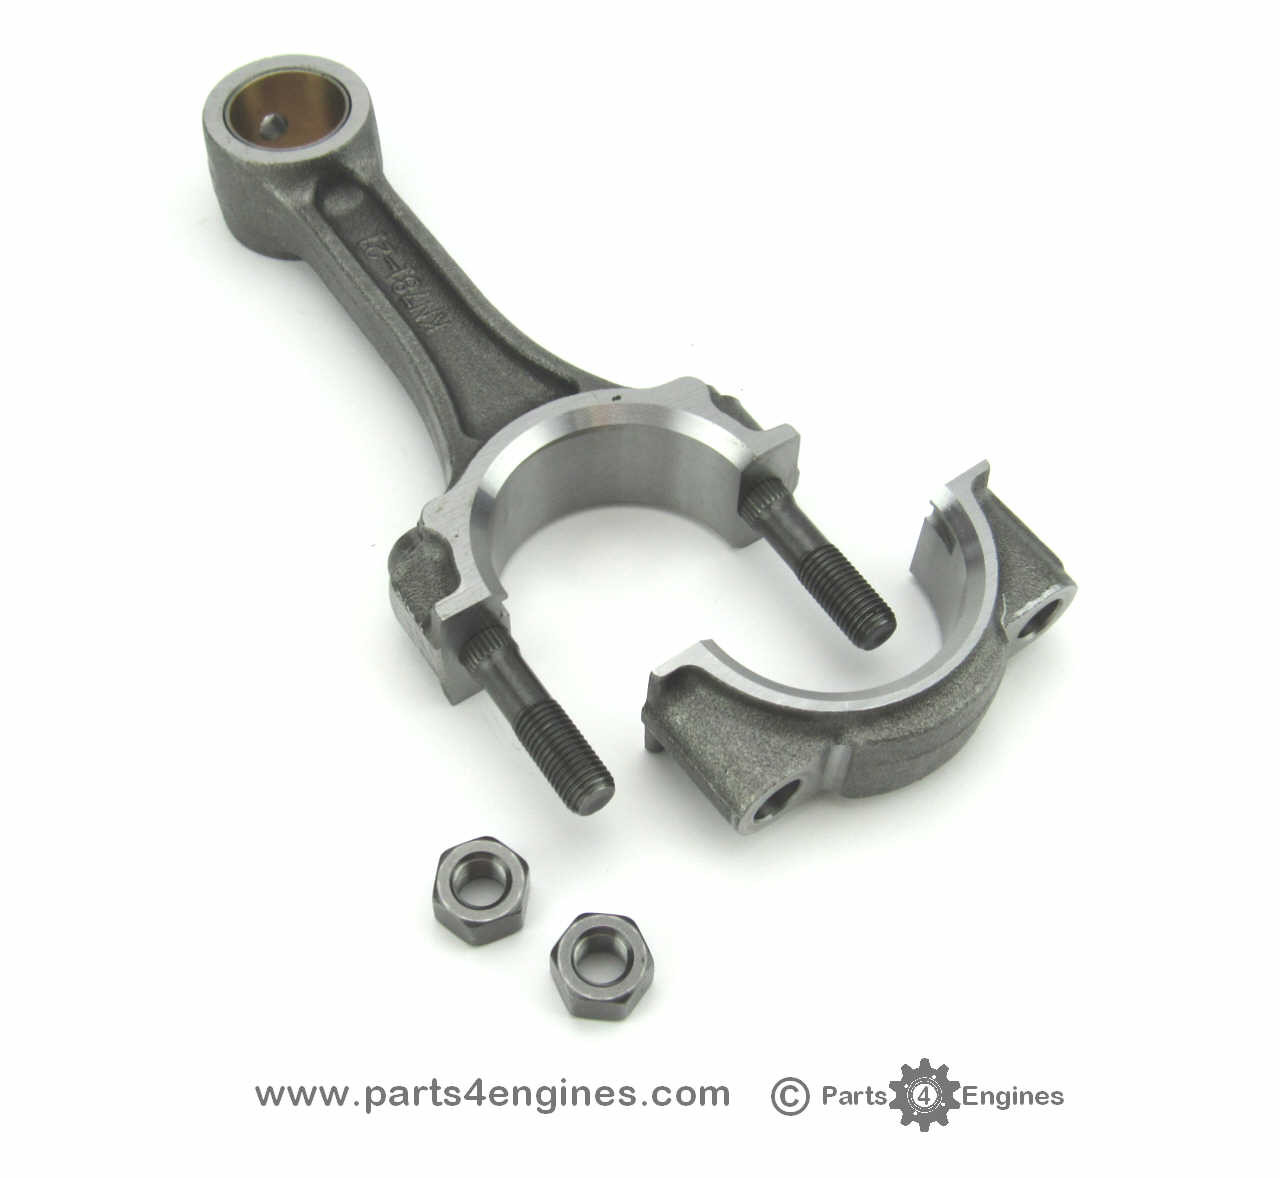 Perkins Perama M25 Connecting Rod - parts4engines.com